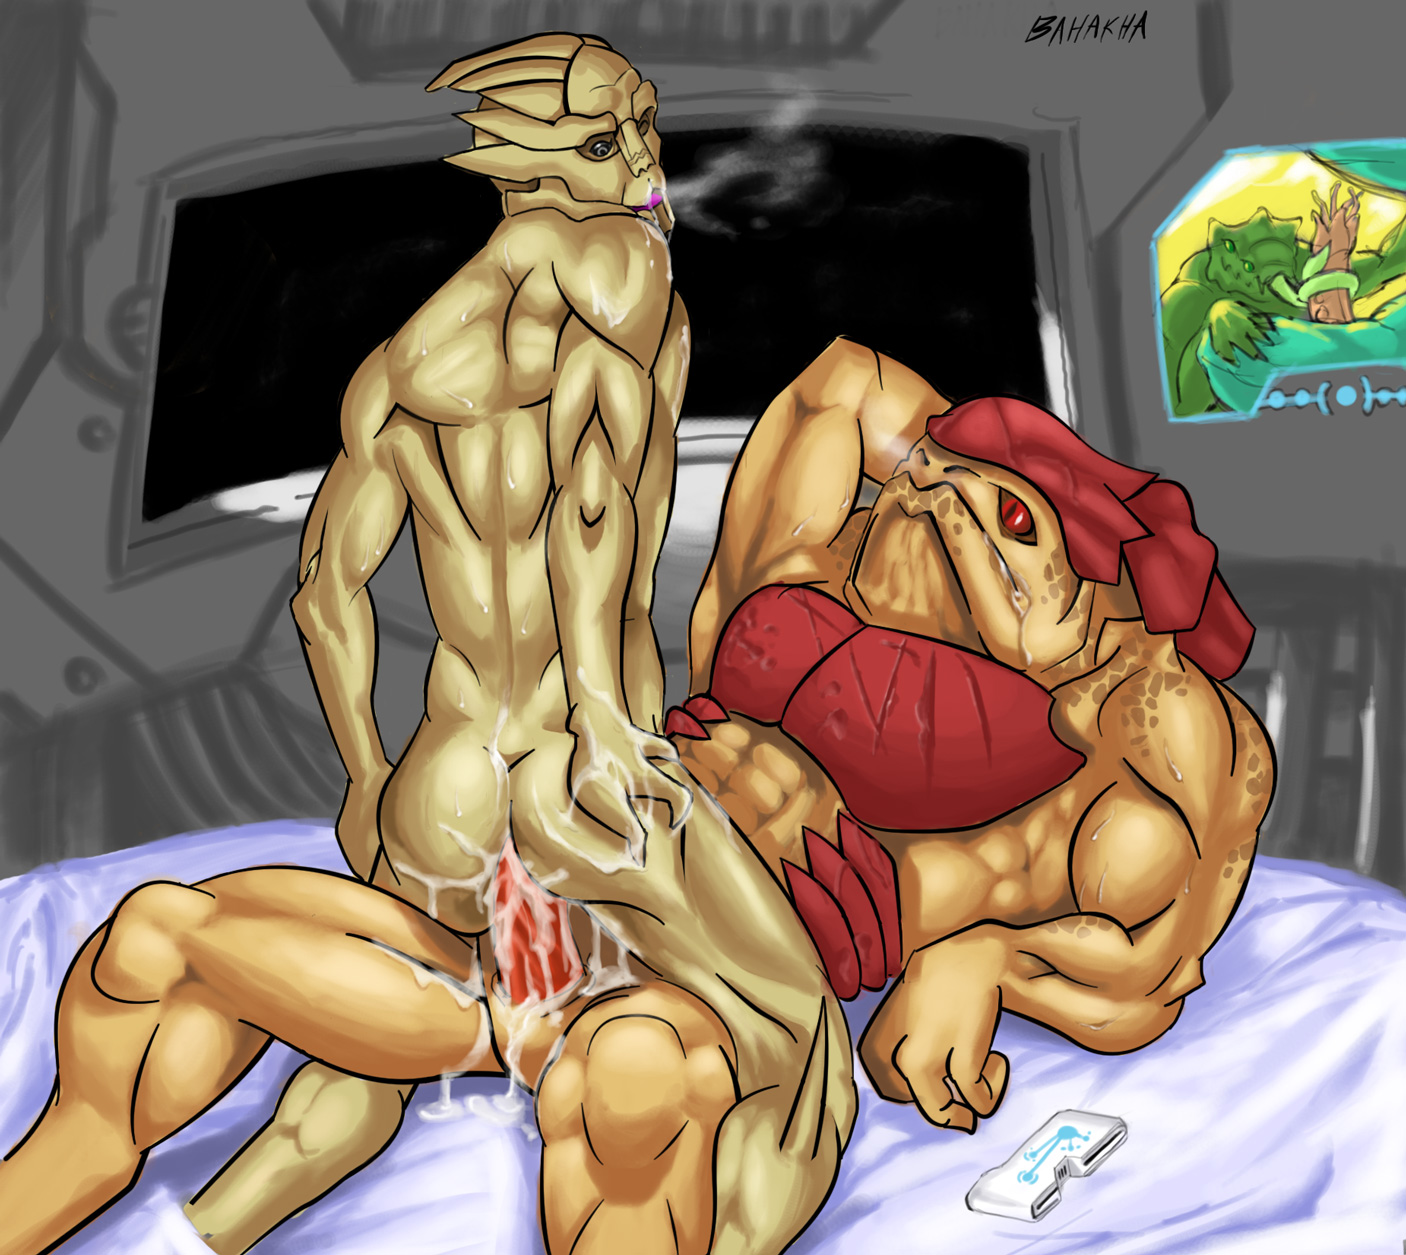 Mass effect gay alien 3d porn erotic picture